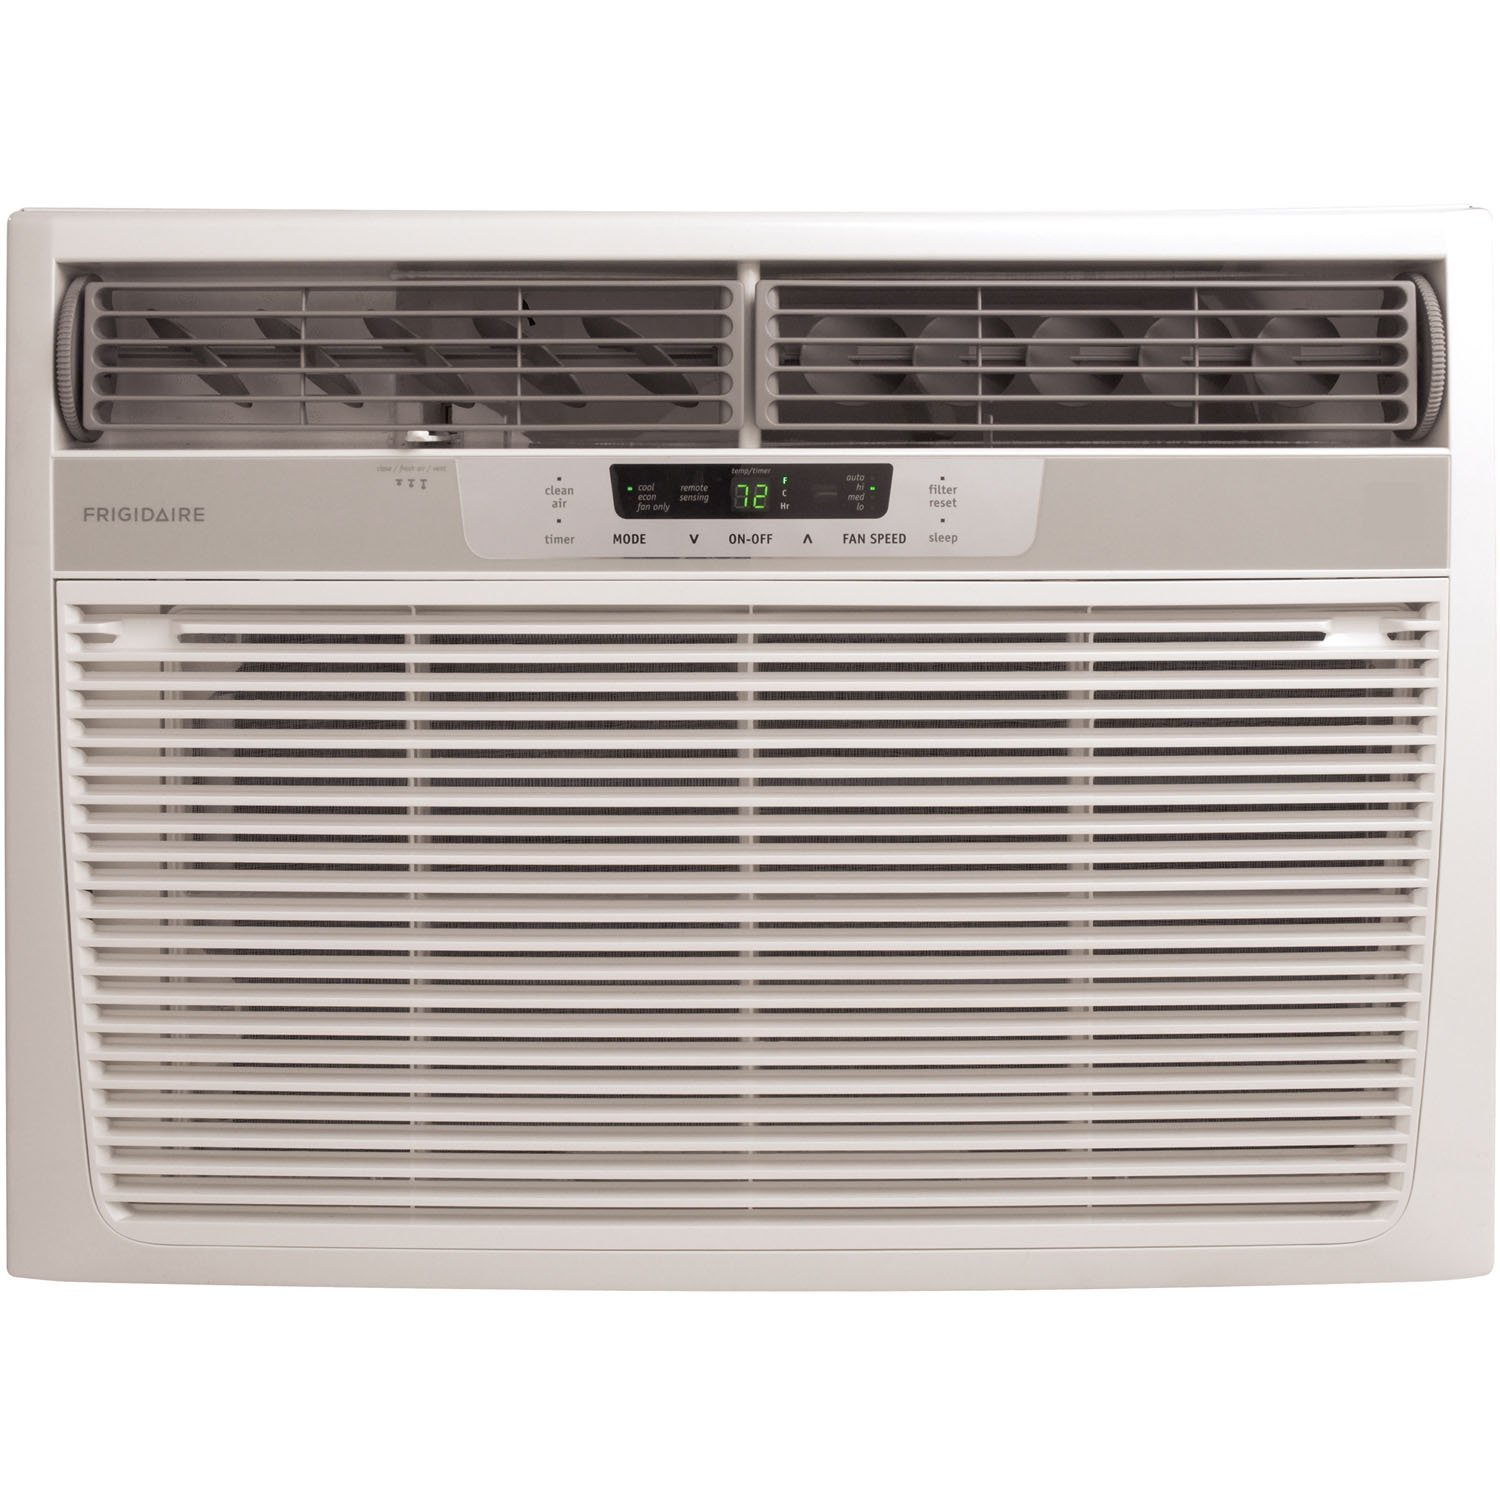 Frigidaire fra156mt1 15 100 btu window mounted room air conditioner review 2016 - Bedroom air conditioner ...